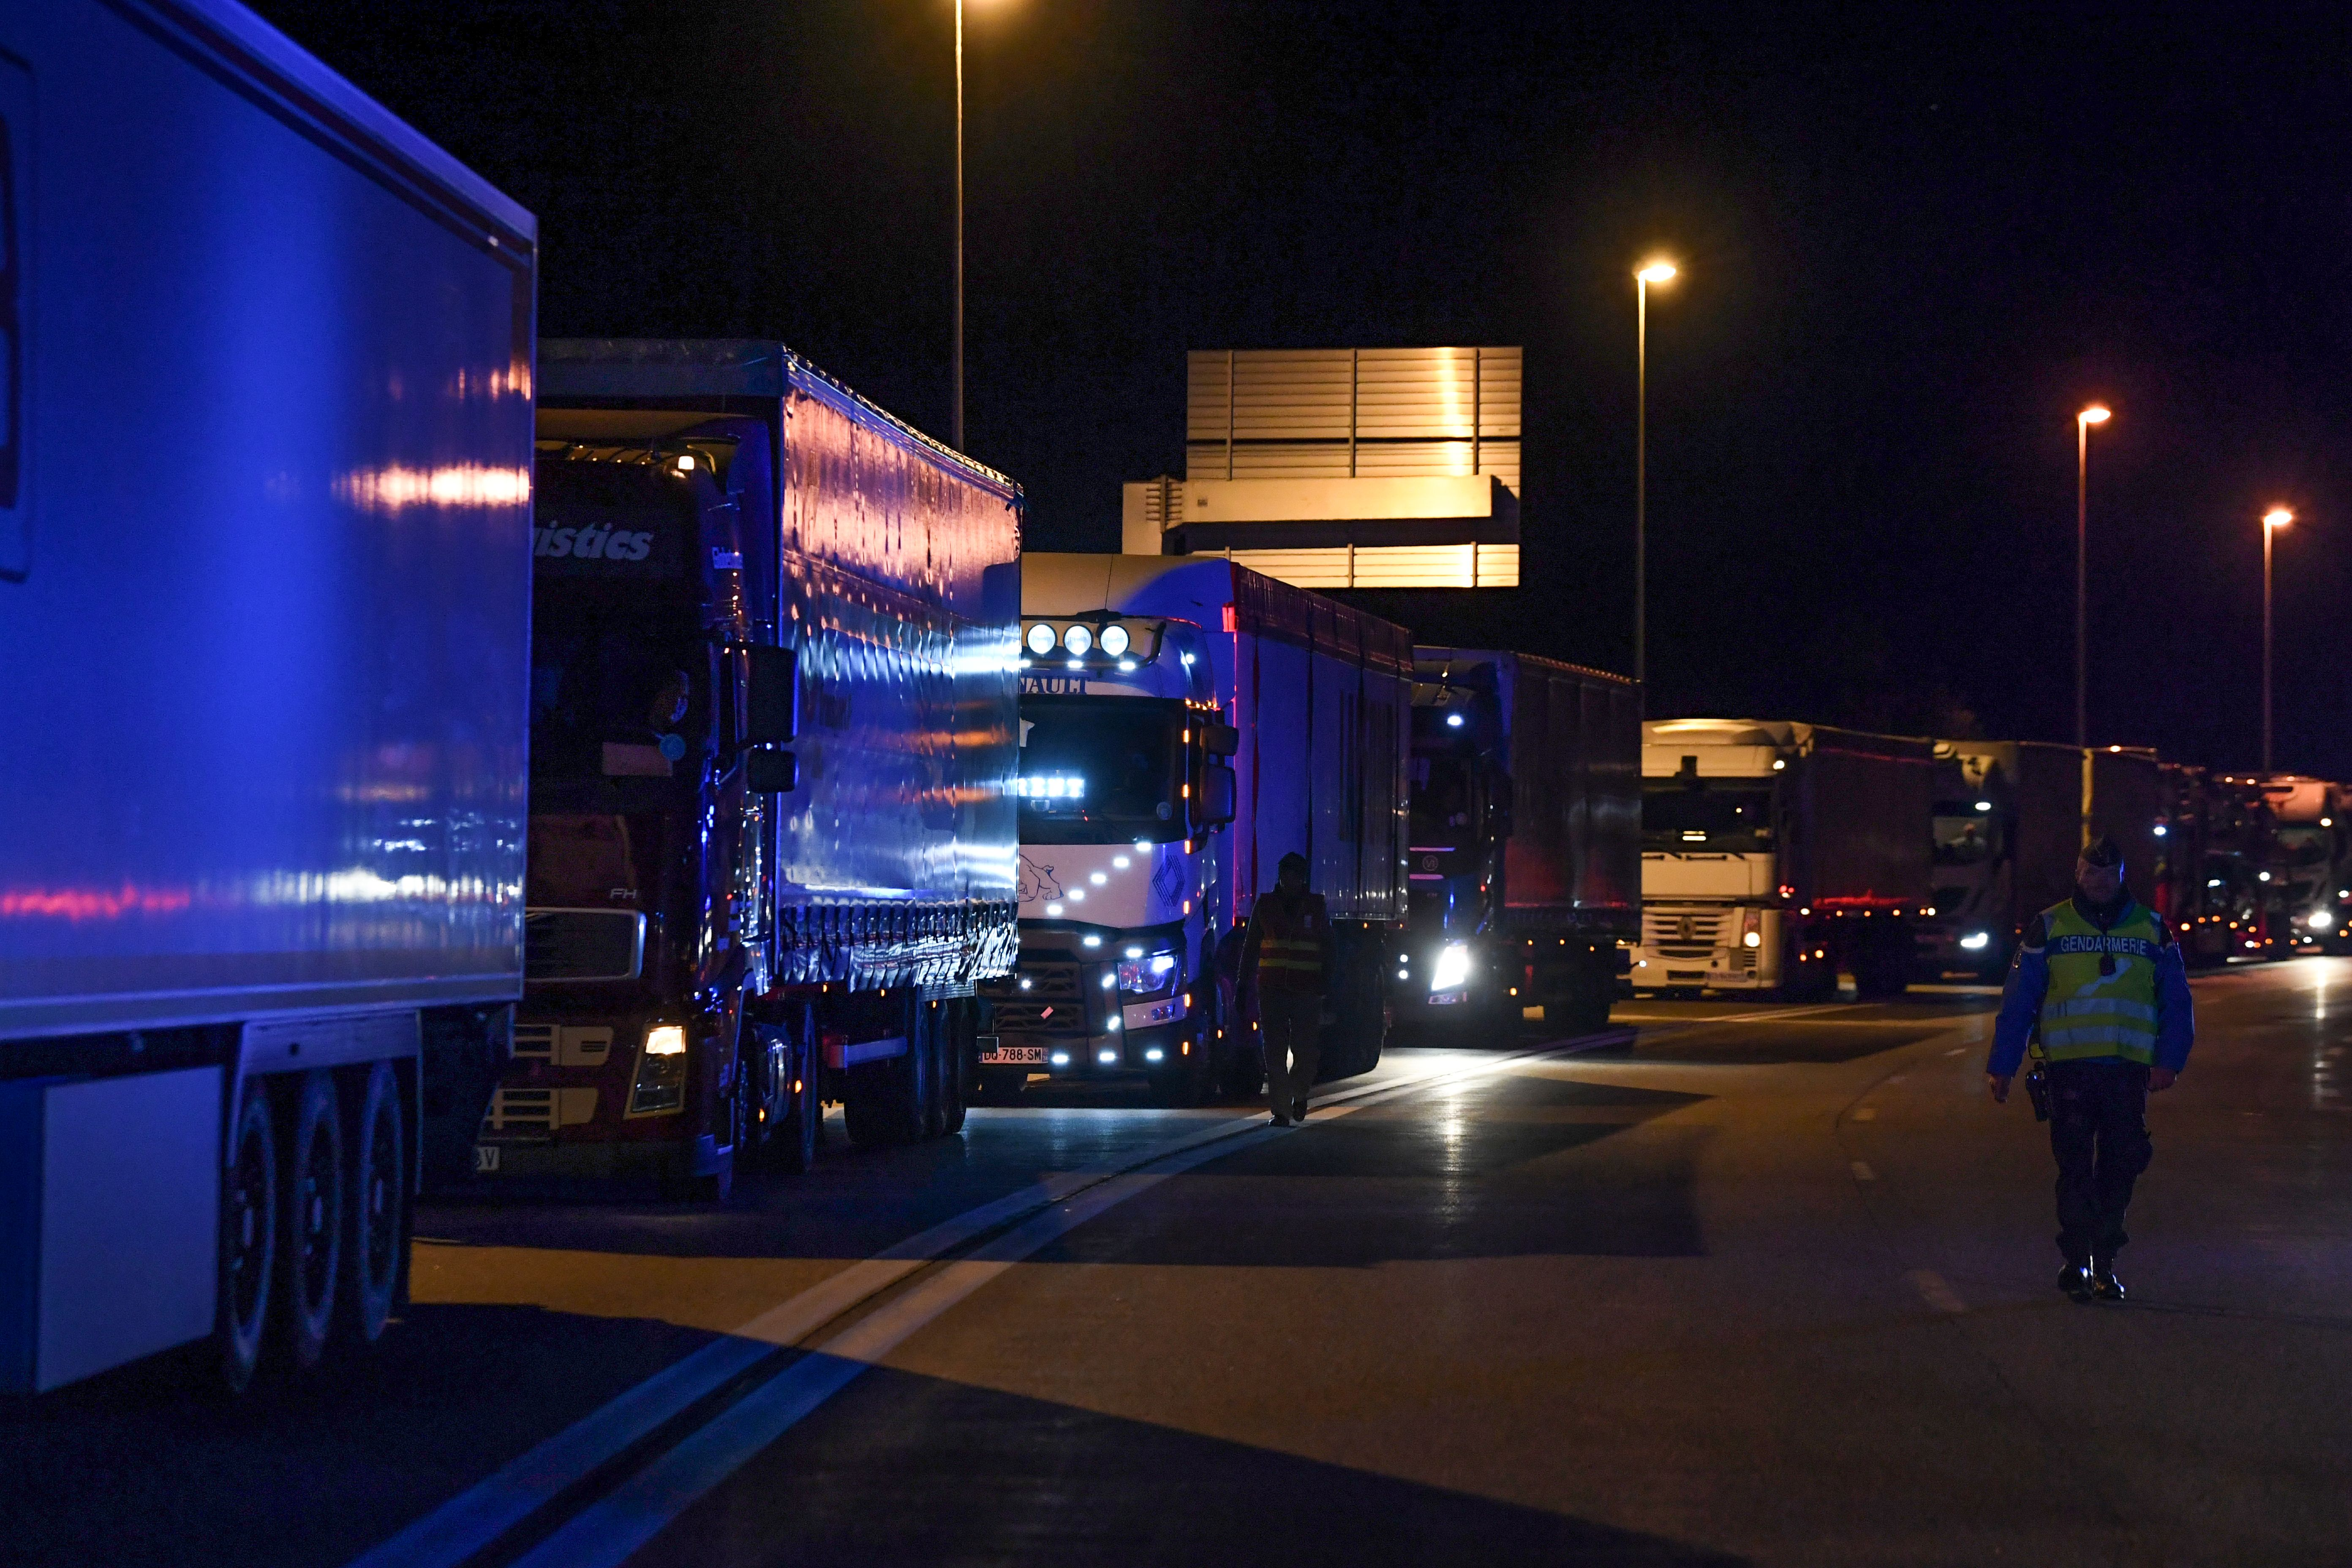 GettyImages-876932570 Truckers: Cities That Defund Police Are in for a Big Surprise Business Featured Top Stories U.S. [your]NEWS